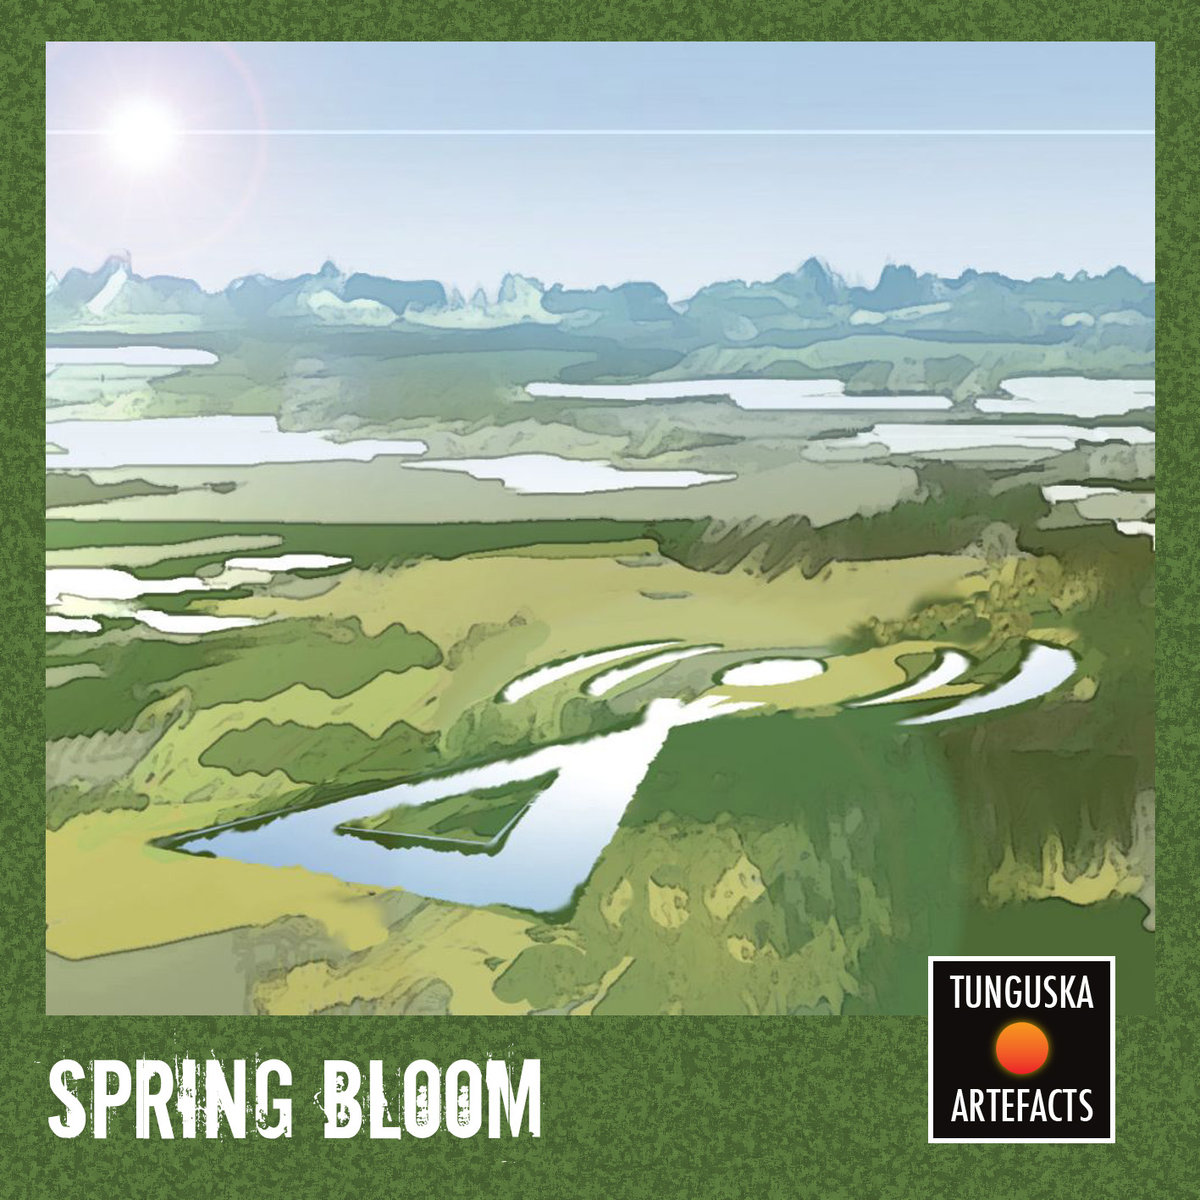 Tunguska Artefacts - Spring Bloom